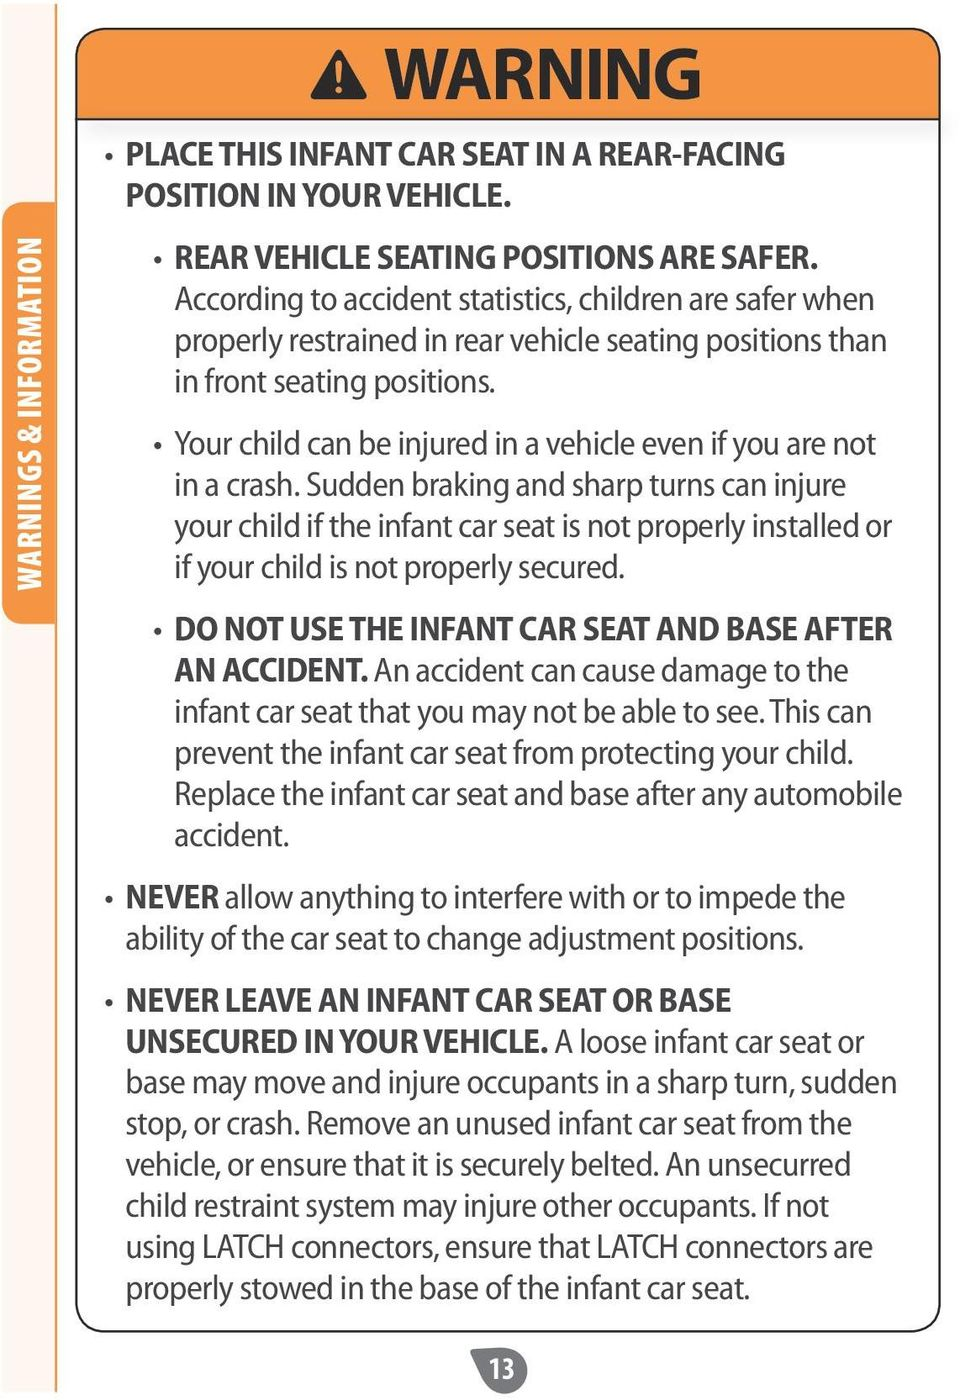 Your child can be injured in a vehicle even if you are not in a crash.